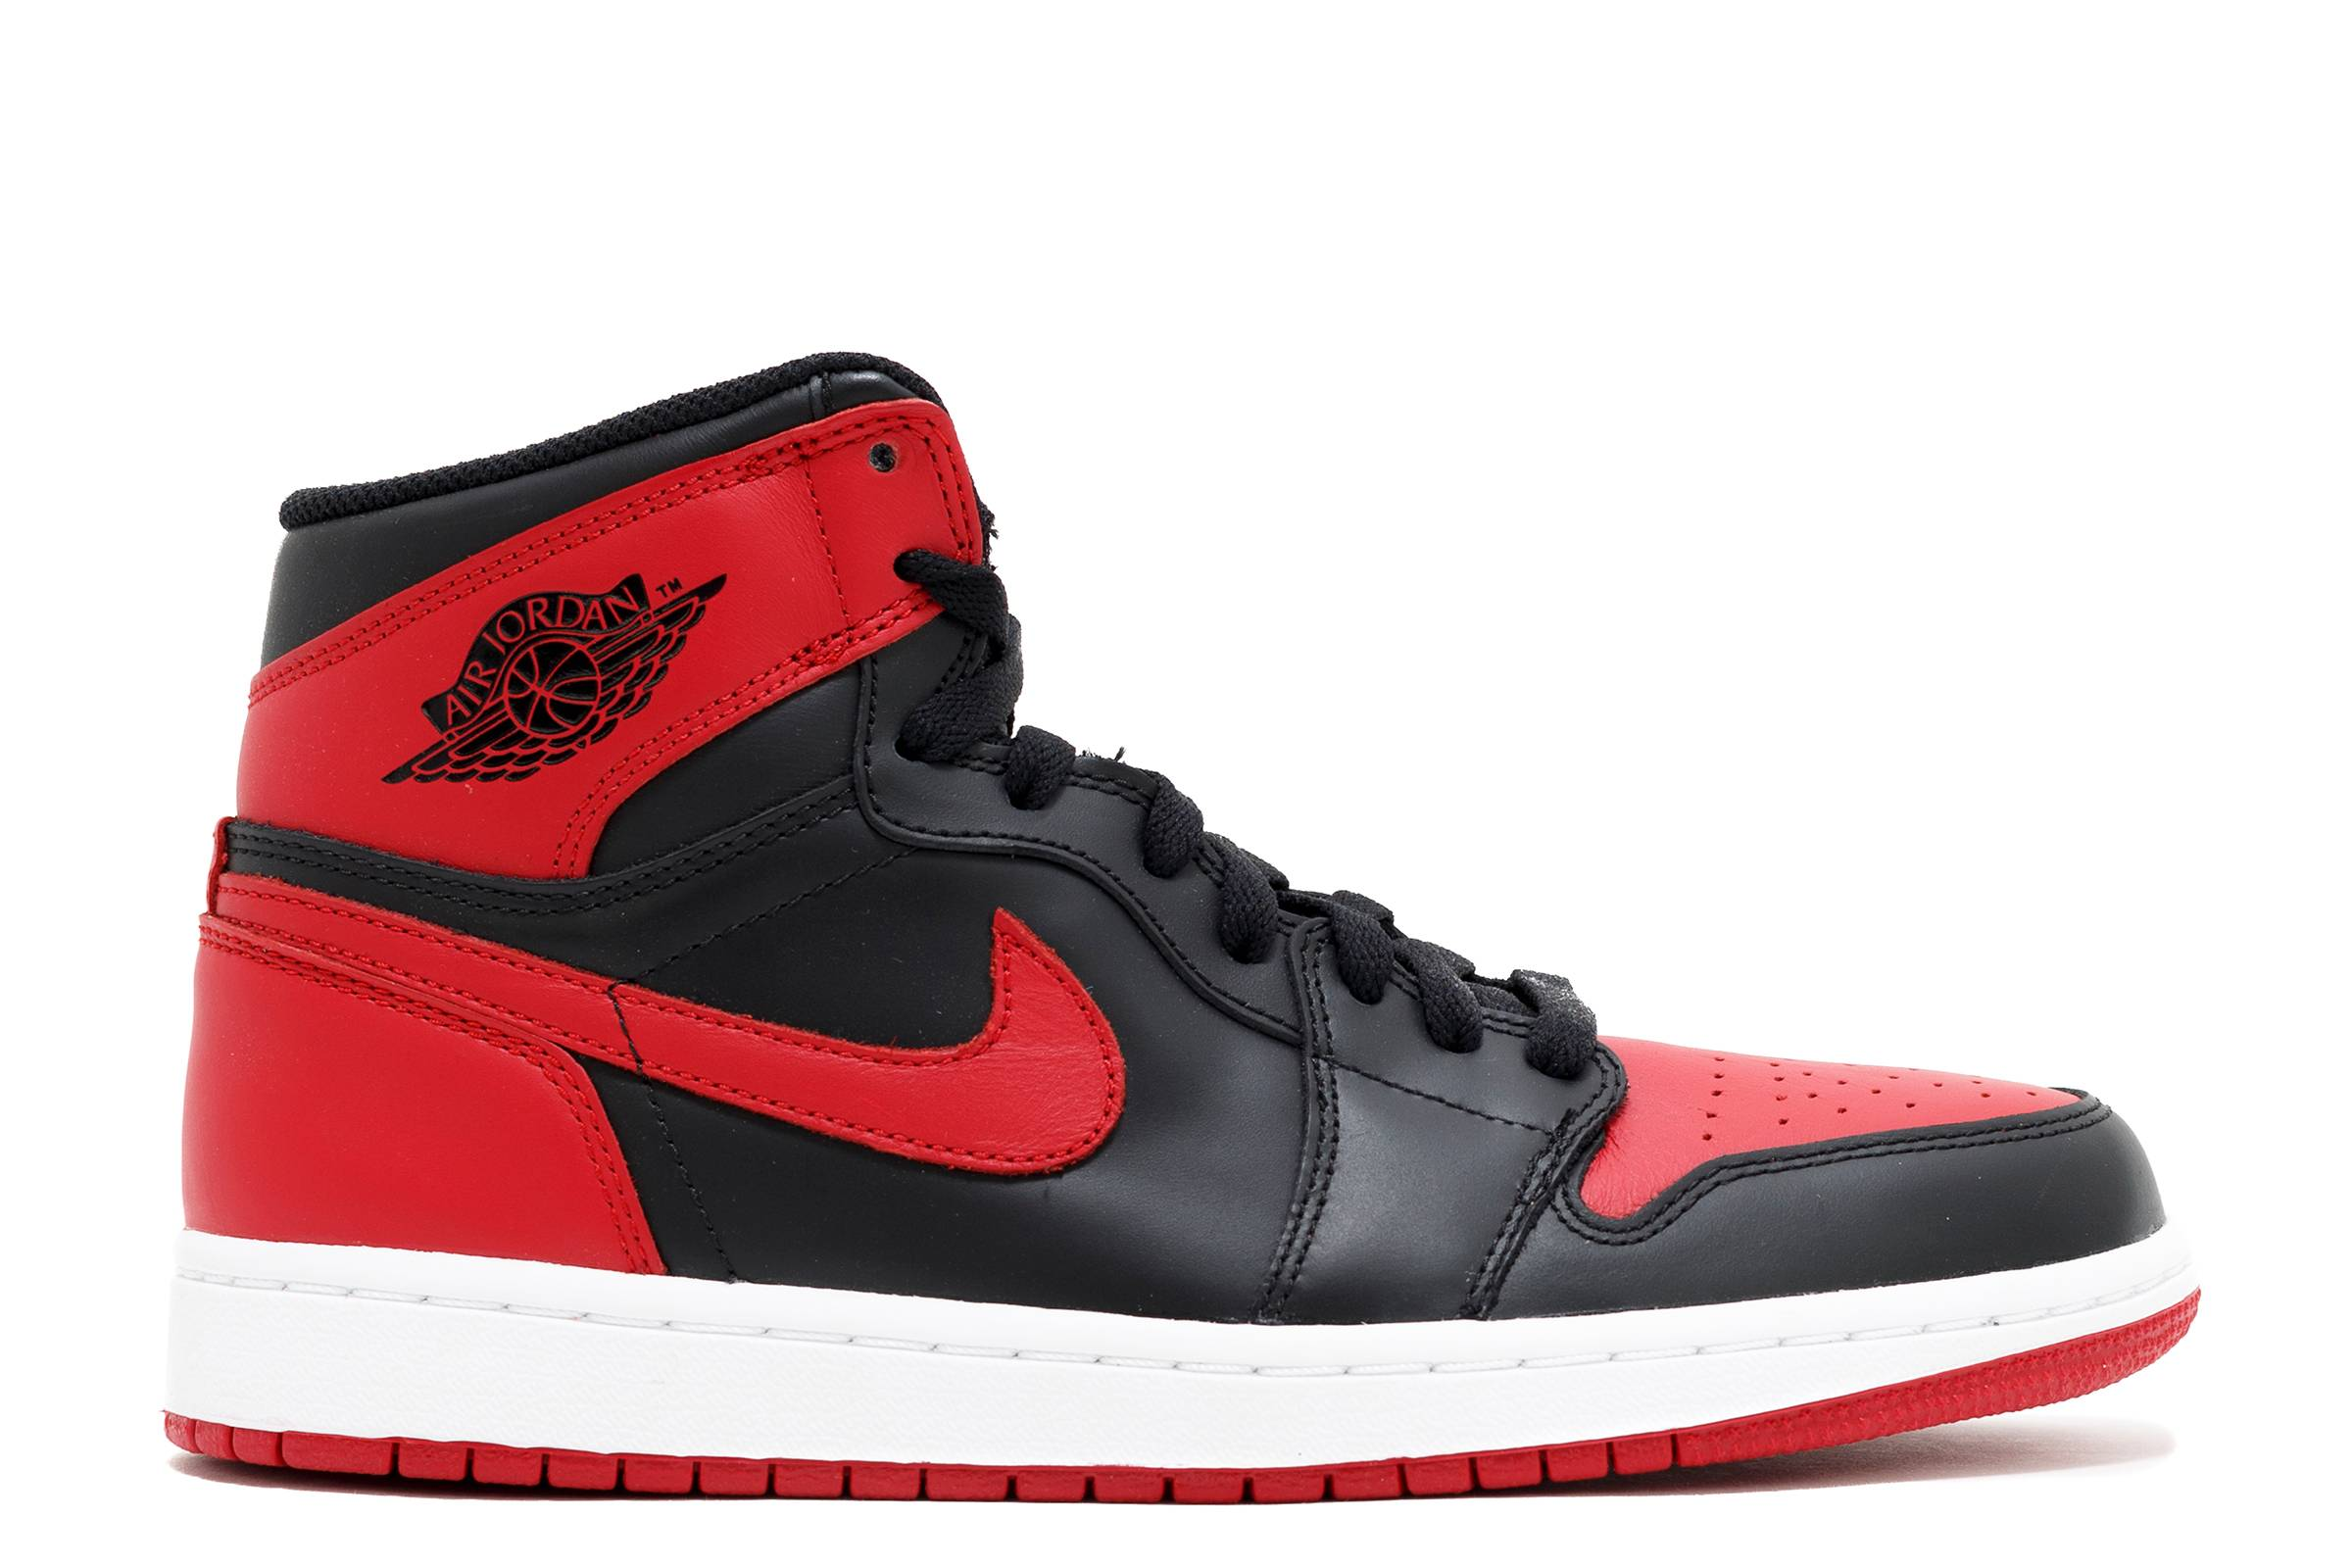 on sale d4704 44339 The One That Started It All  A History of the Jordan 1